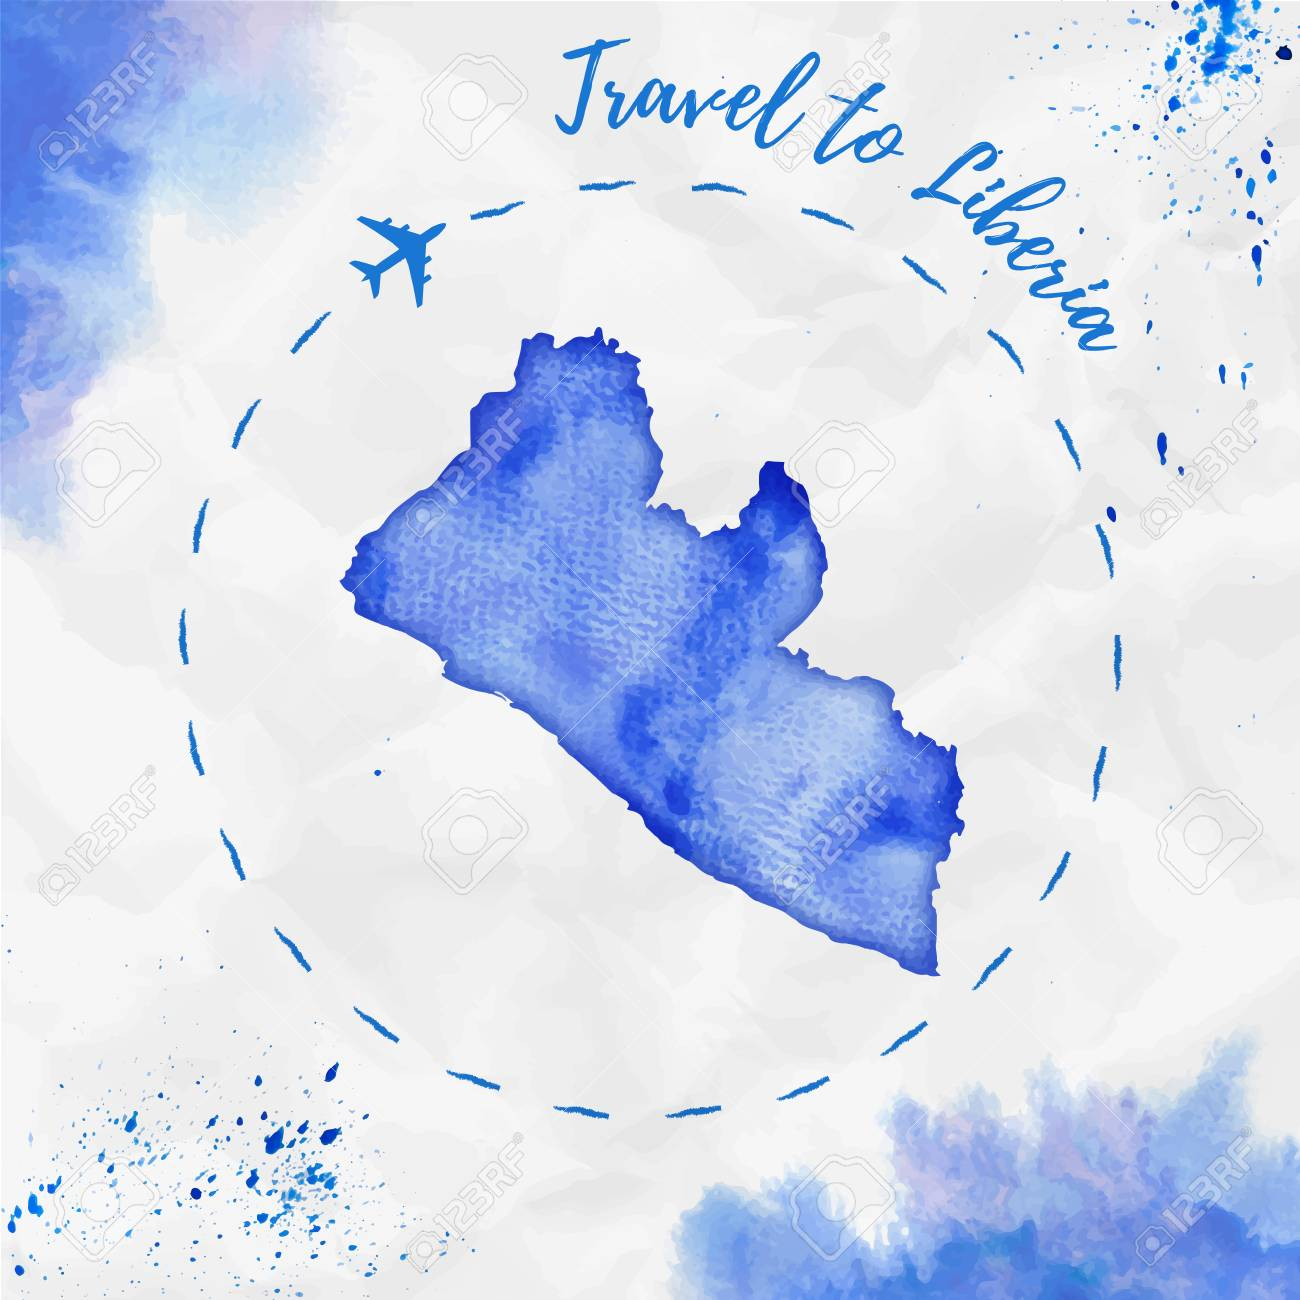 Liberia watercolor map in blue colors travel to liberia poster liberia watercolor map in blue colors travel to liberia poster with airplane trace and handpainted freerunsca Gallery